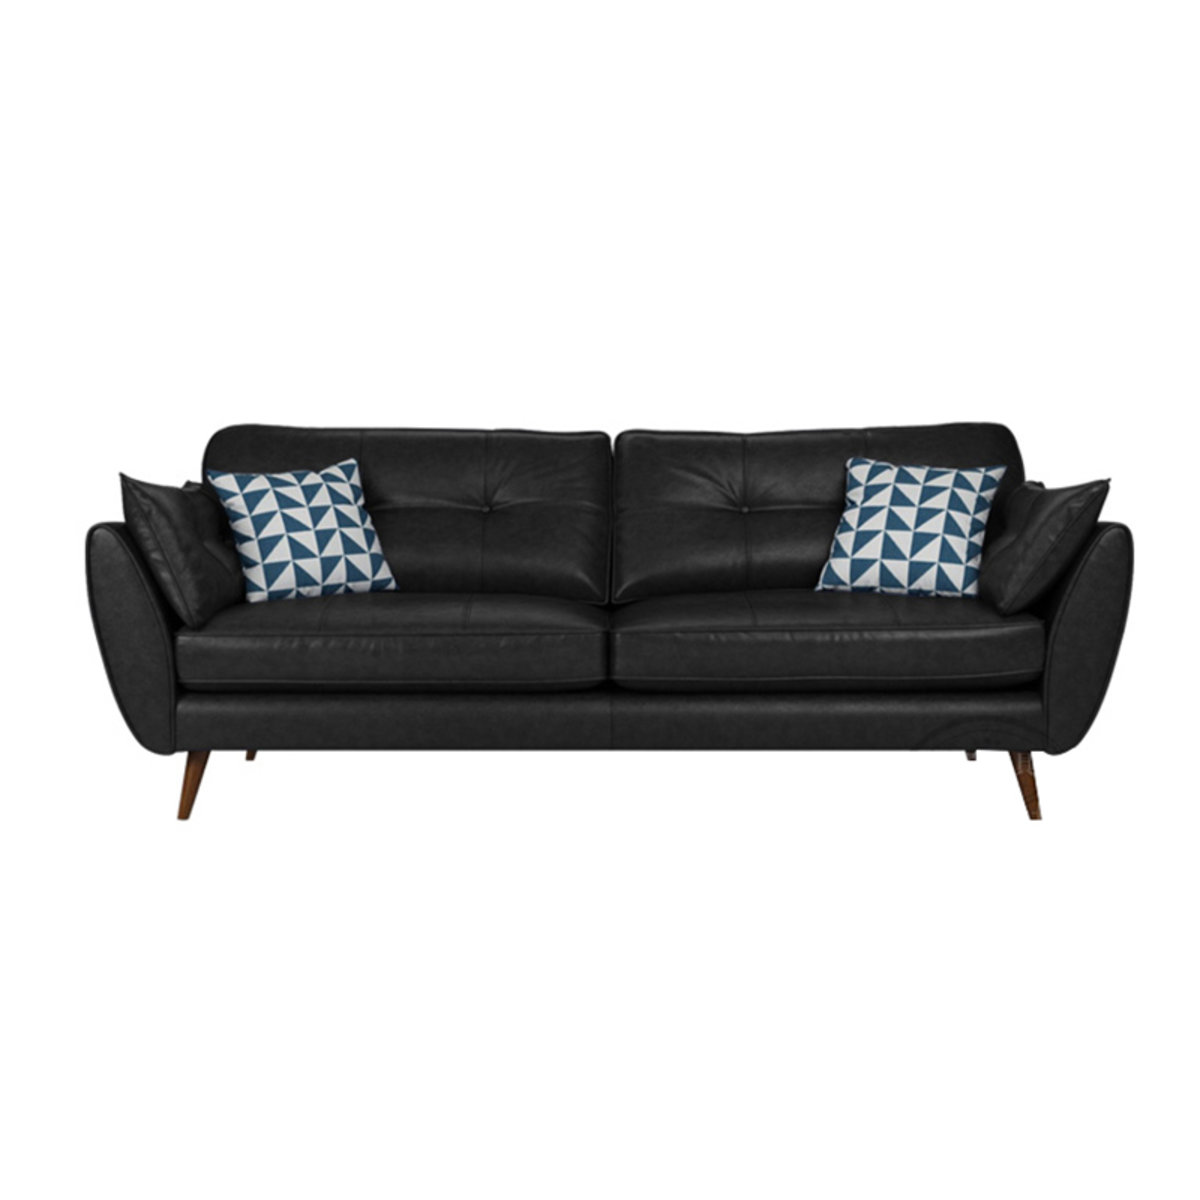 2 seaters PU sofa MR-57 Black